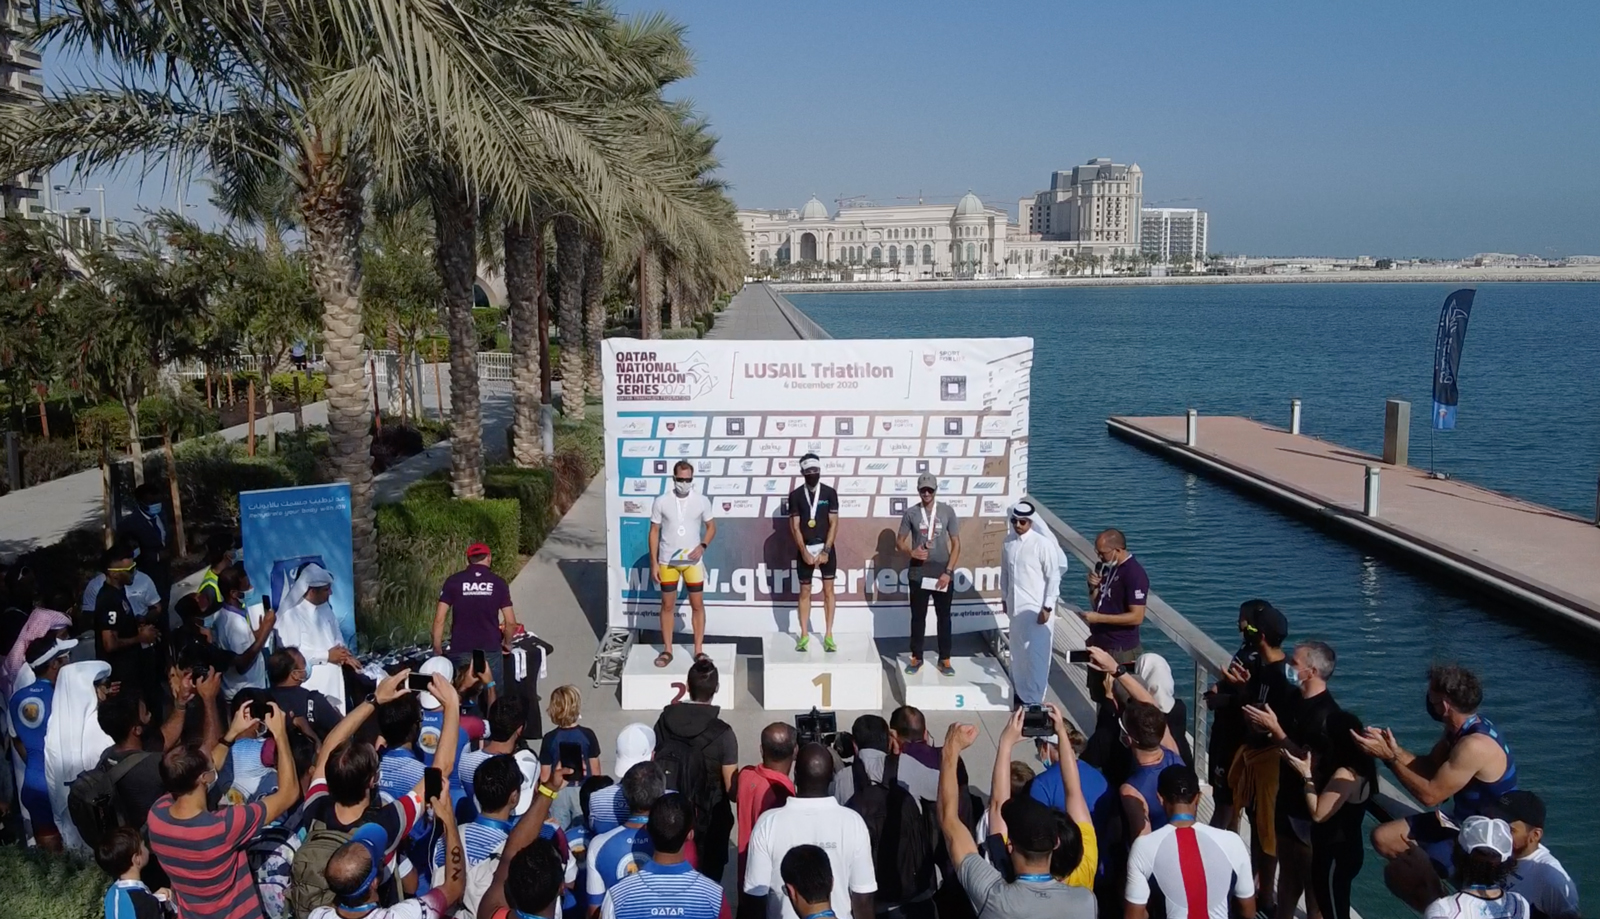 World class triathlon but not the world comes to Lusail City